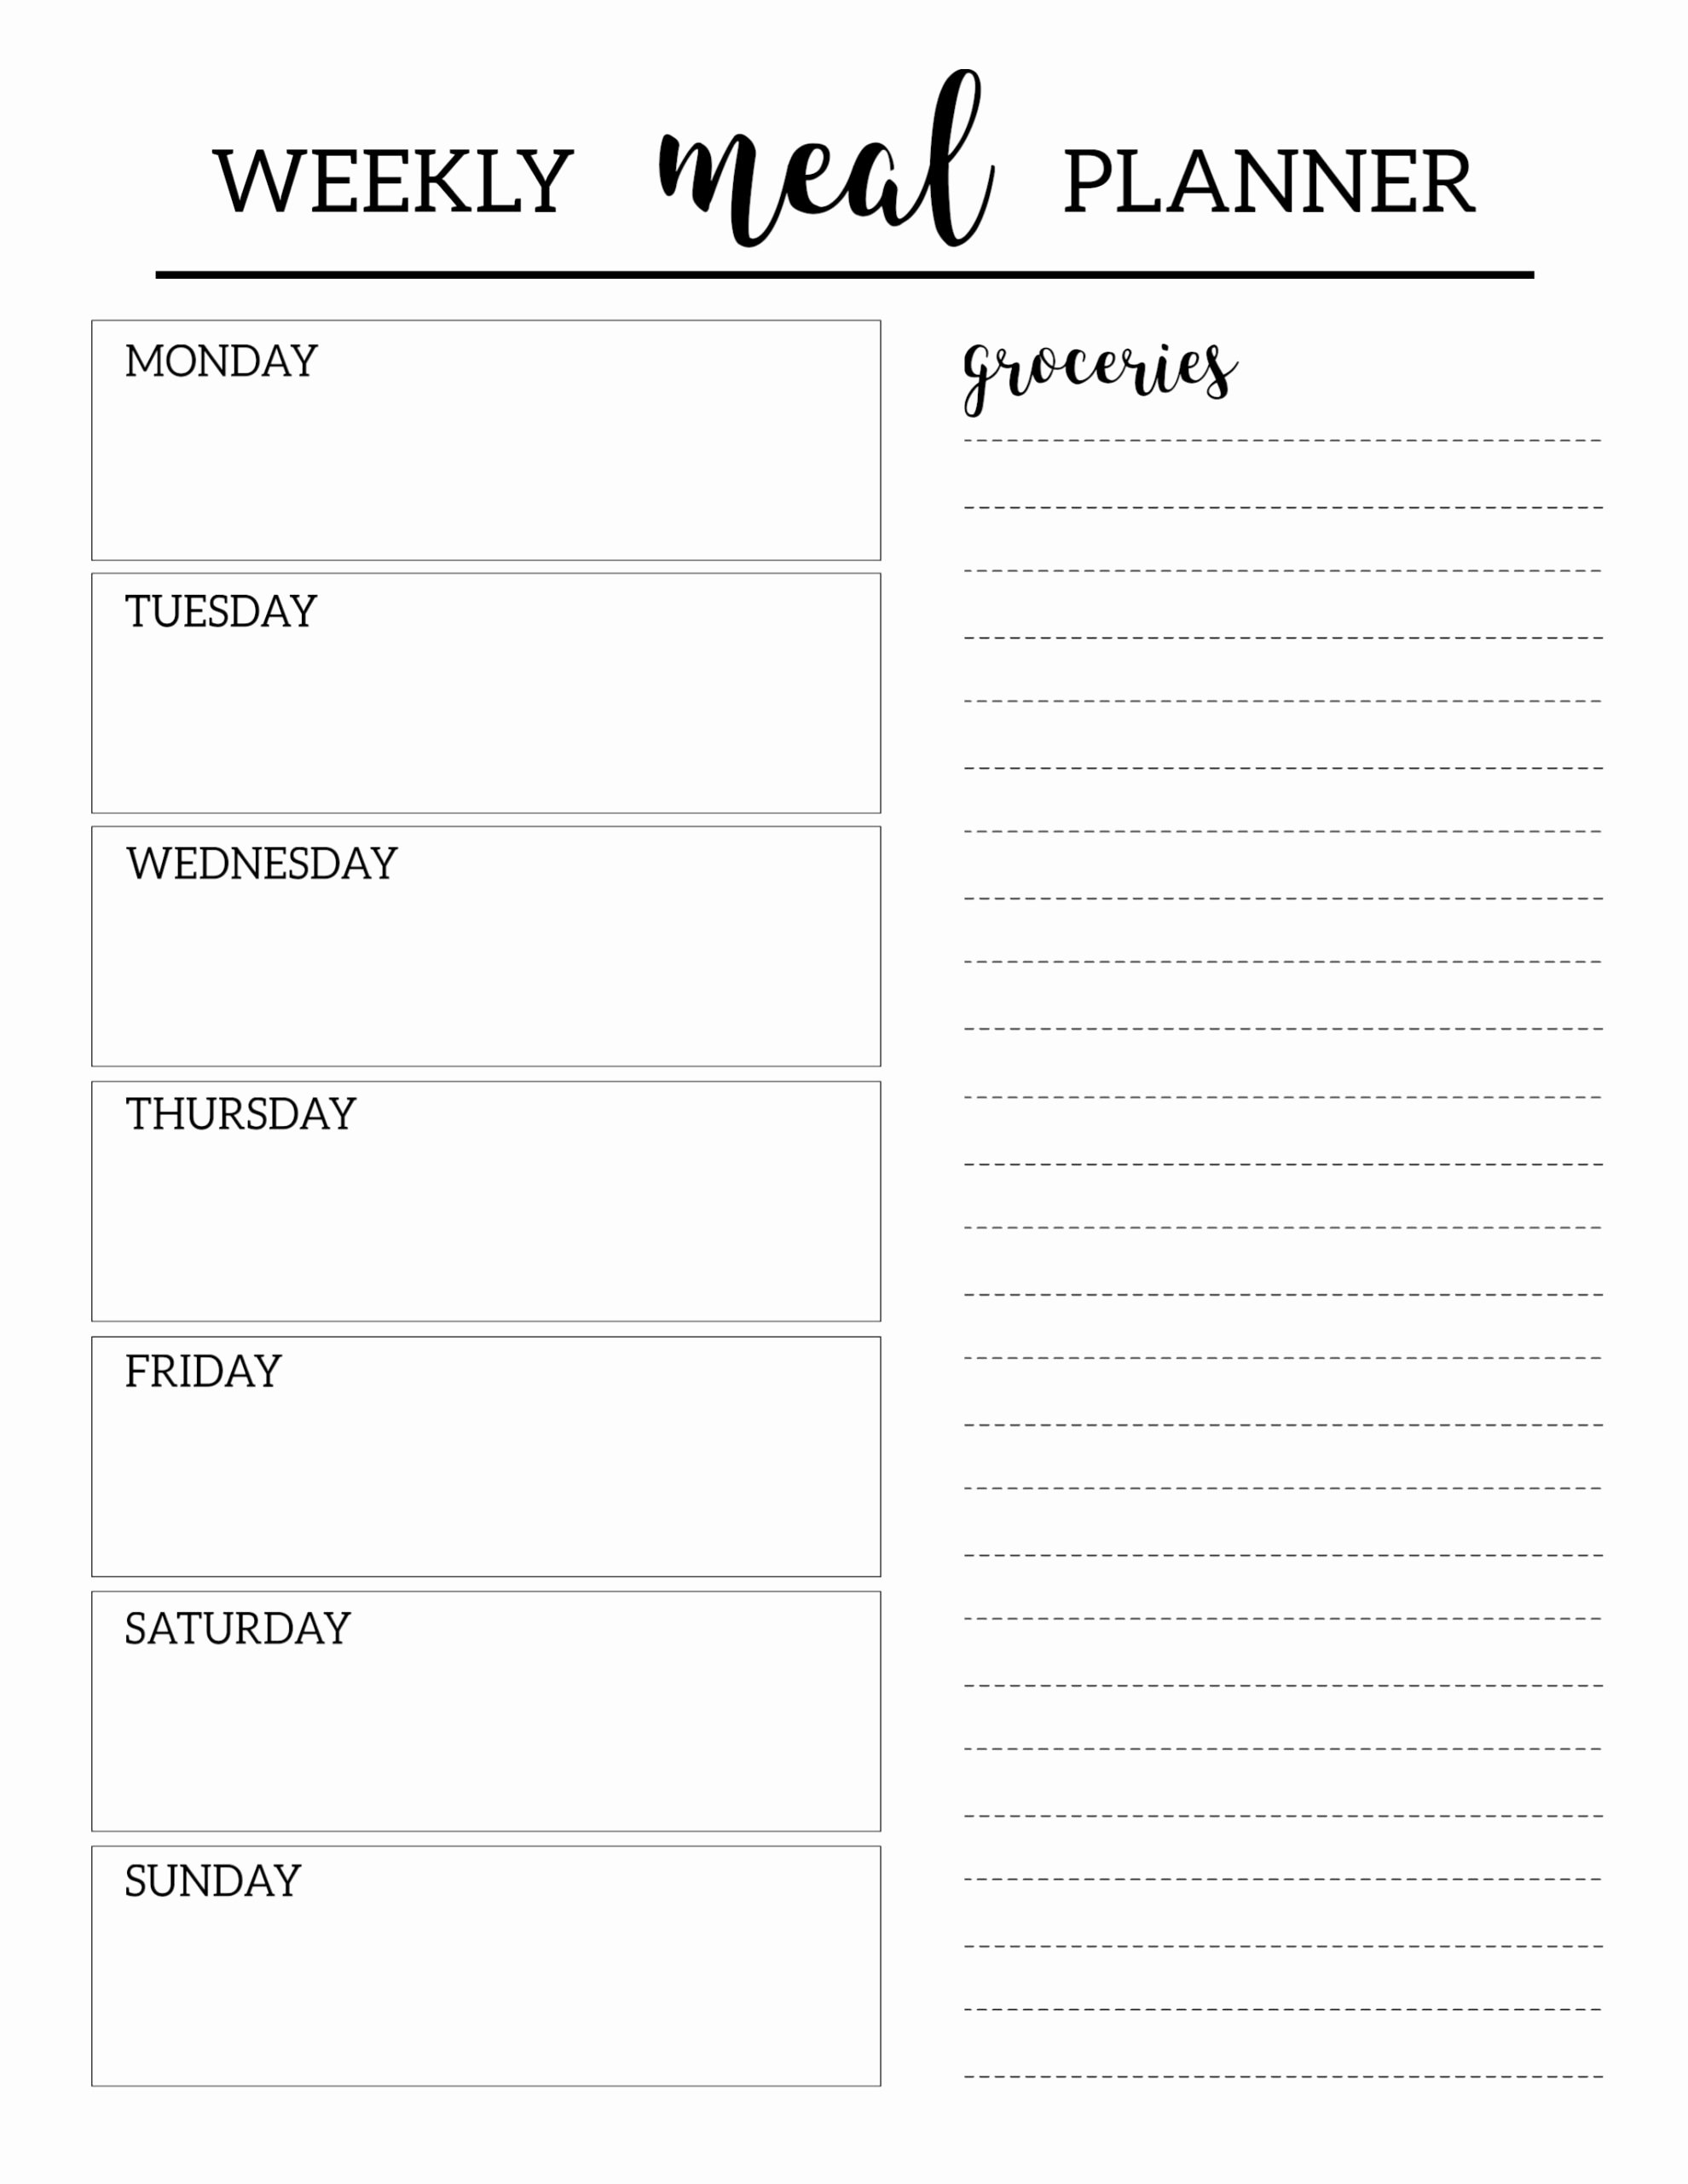 Printable Daily Planner Template Beautiful Free Printable Meal Planner Template Paper Trail Design